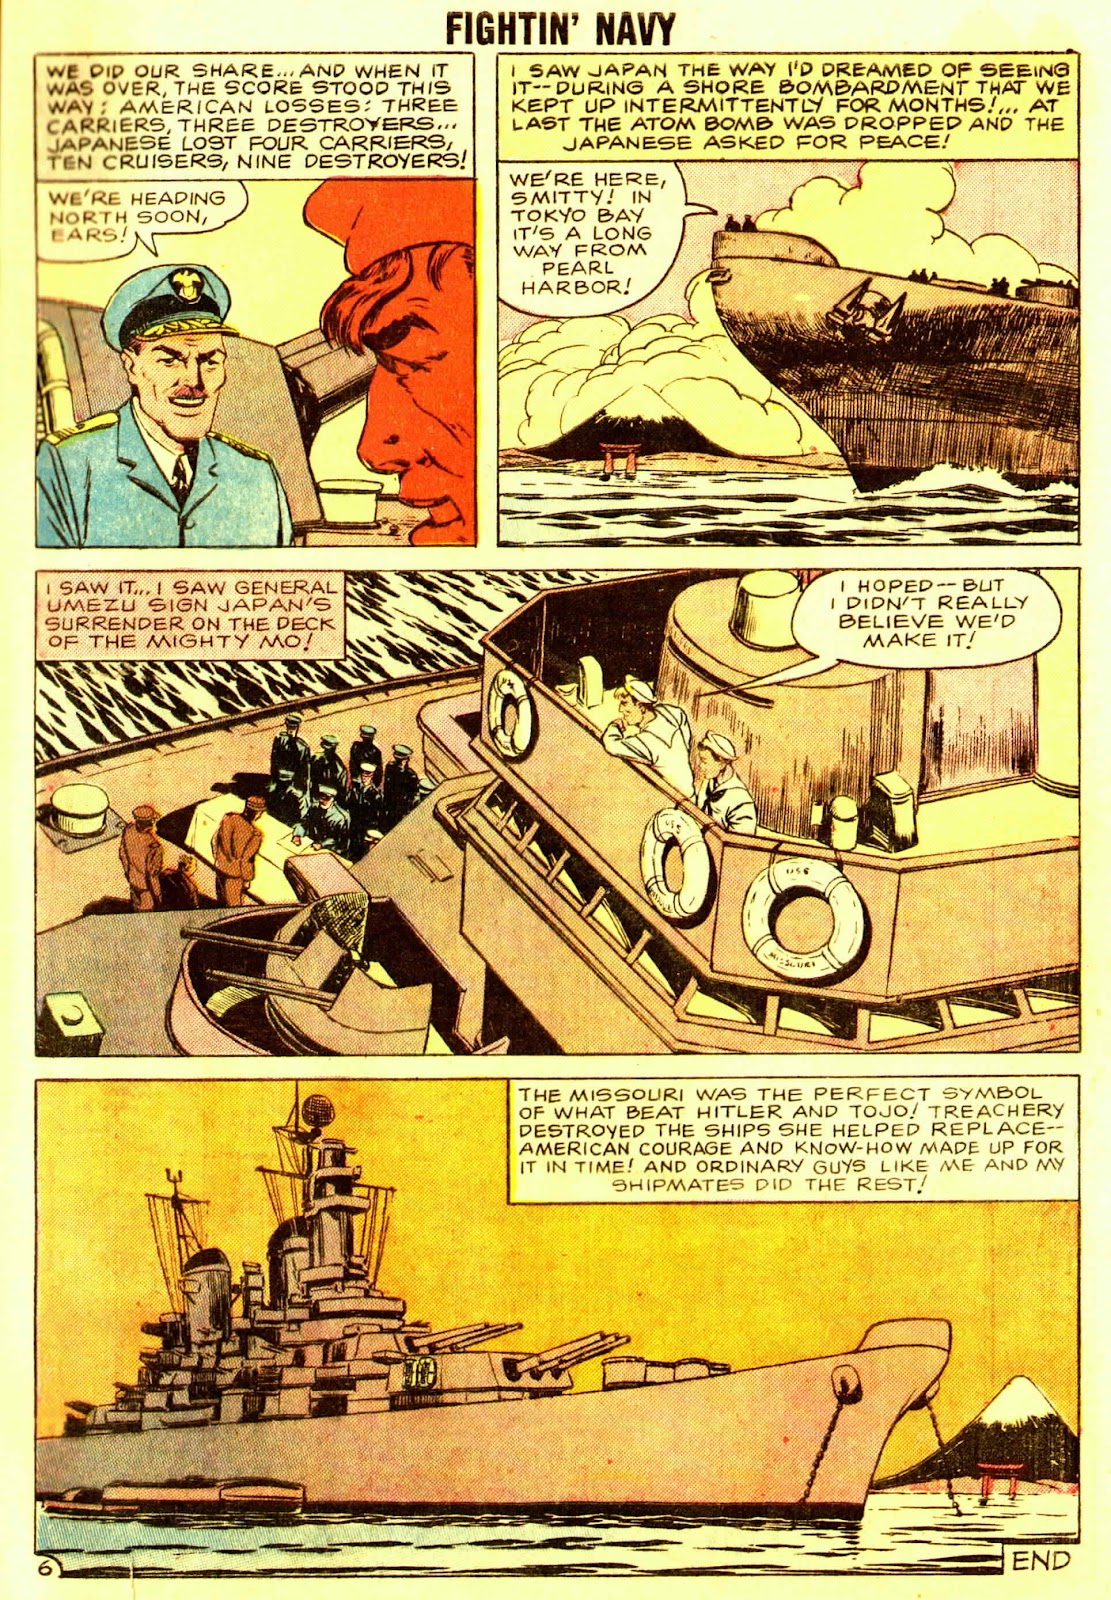 Read online Fightin' Navy comic -  Issue #83 - 65